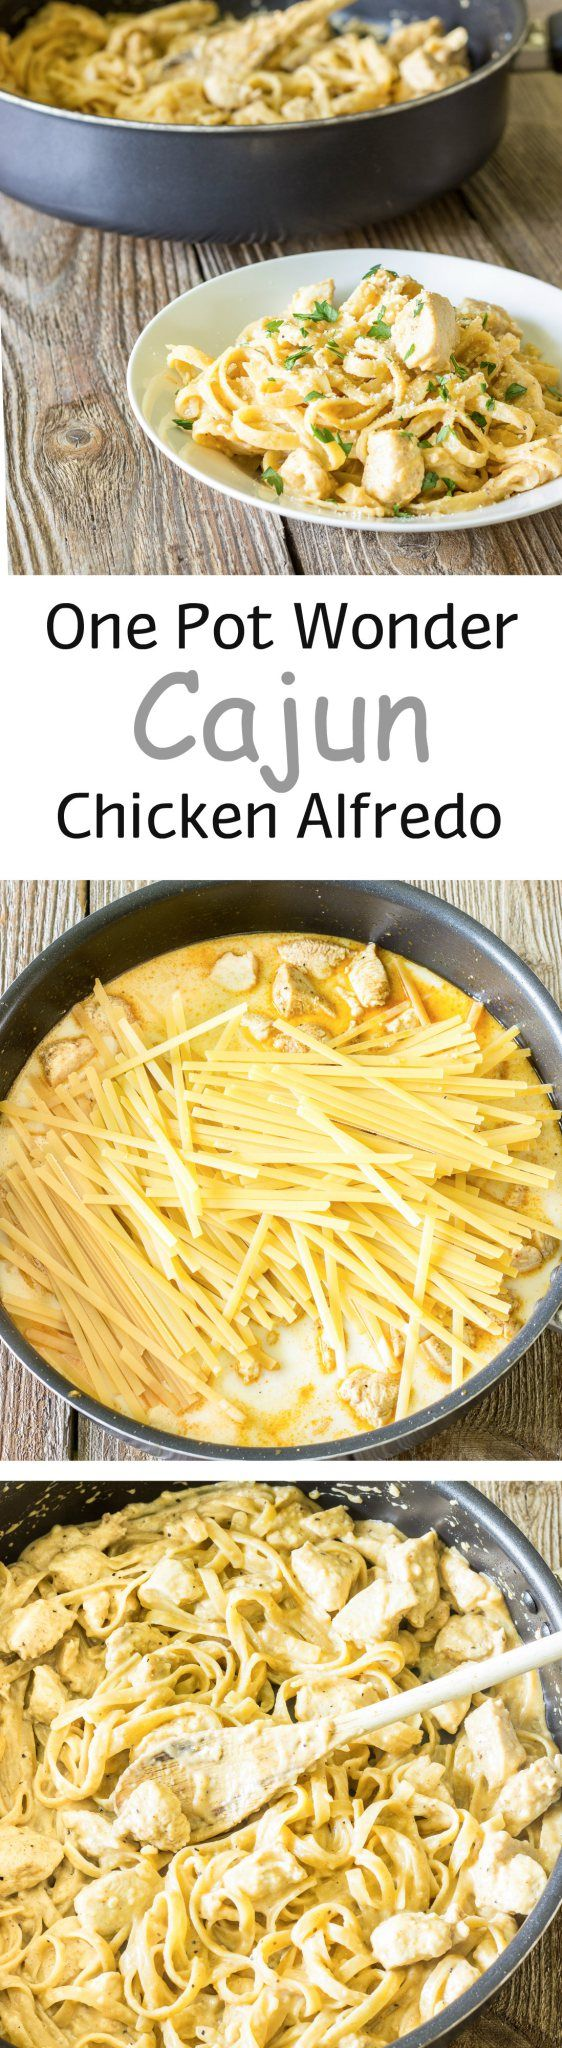 handbags latest fashion One Pot Wonder Cajun Chicken Alfredo